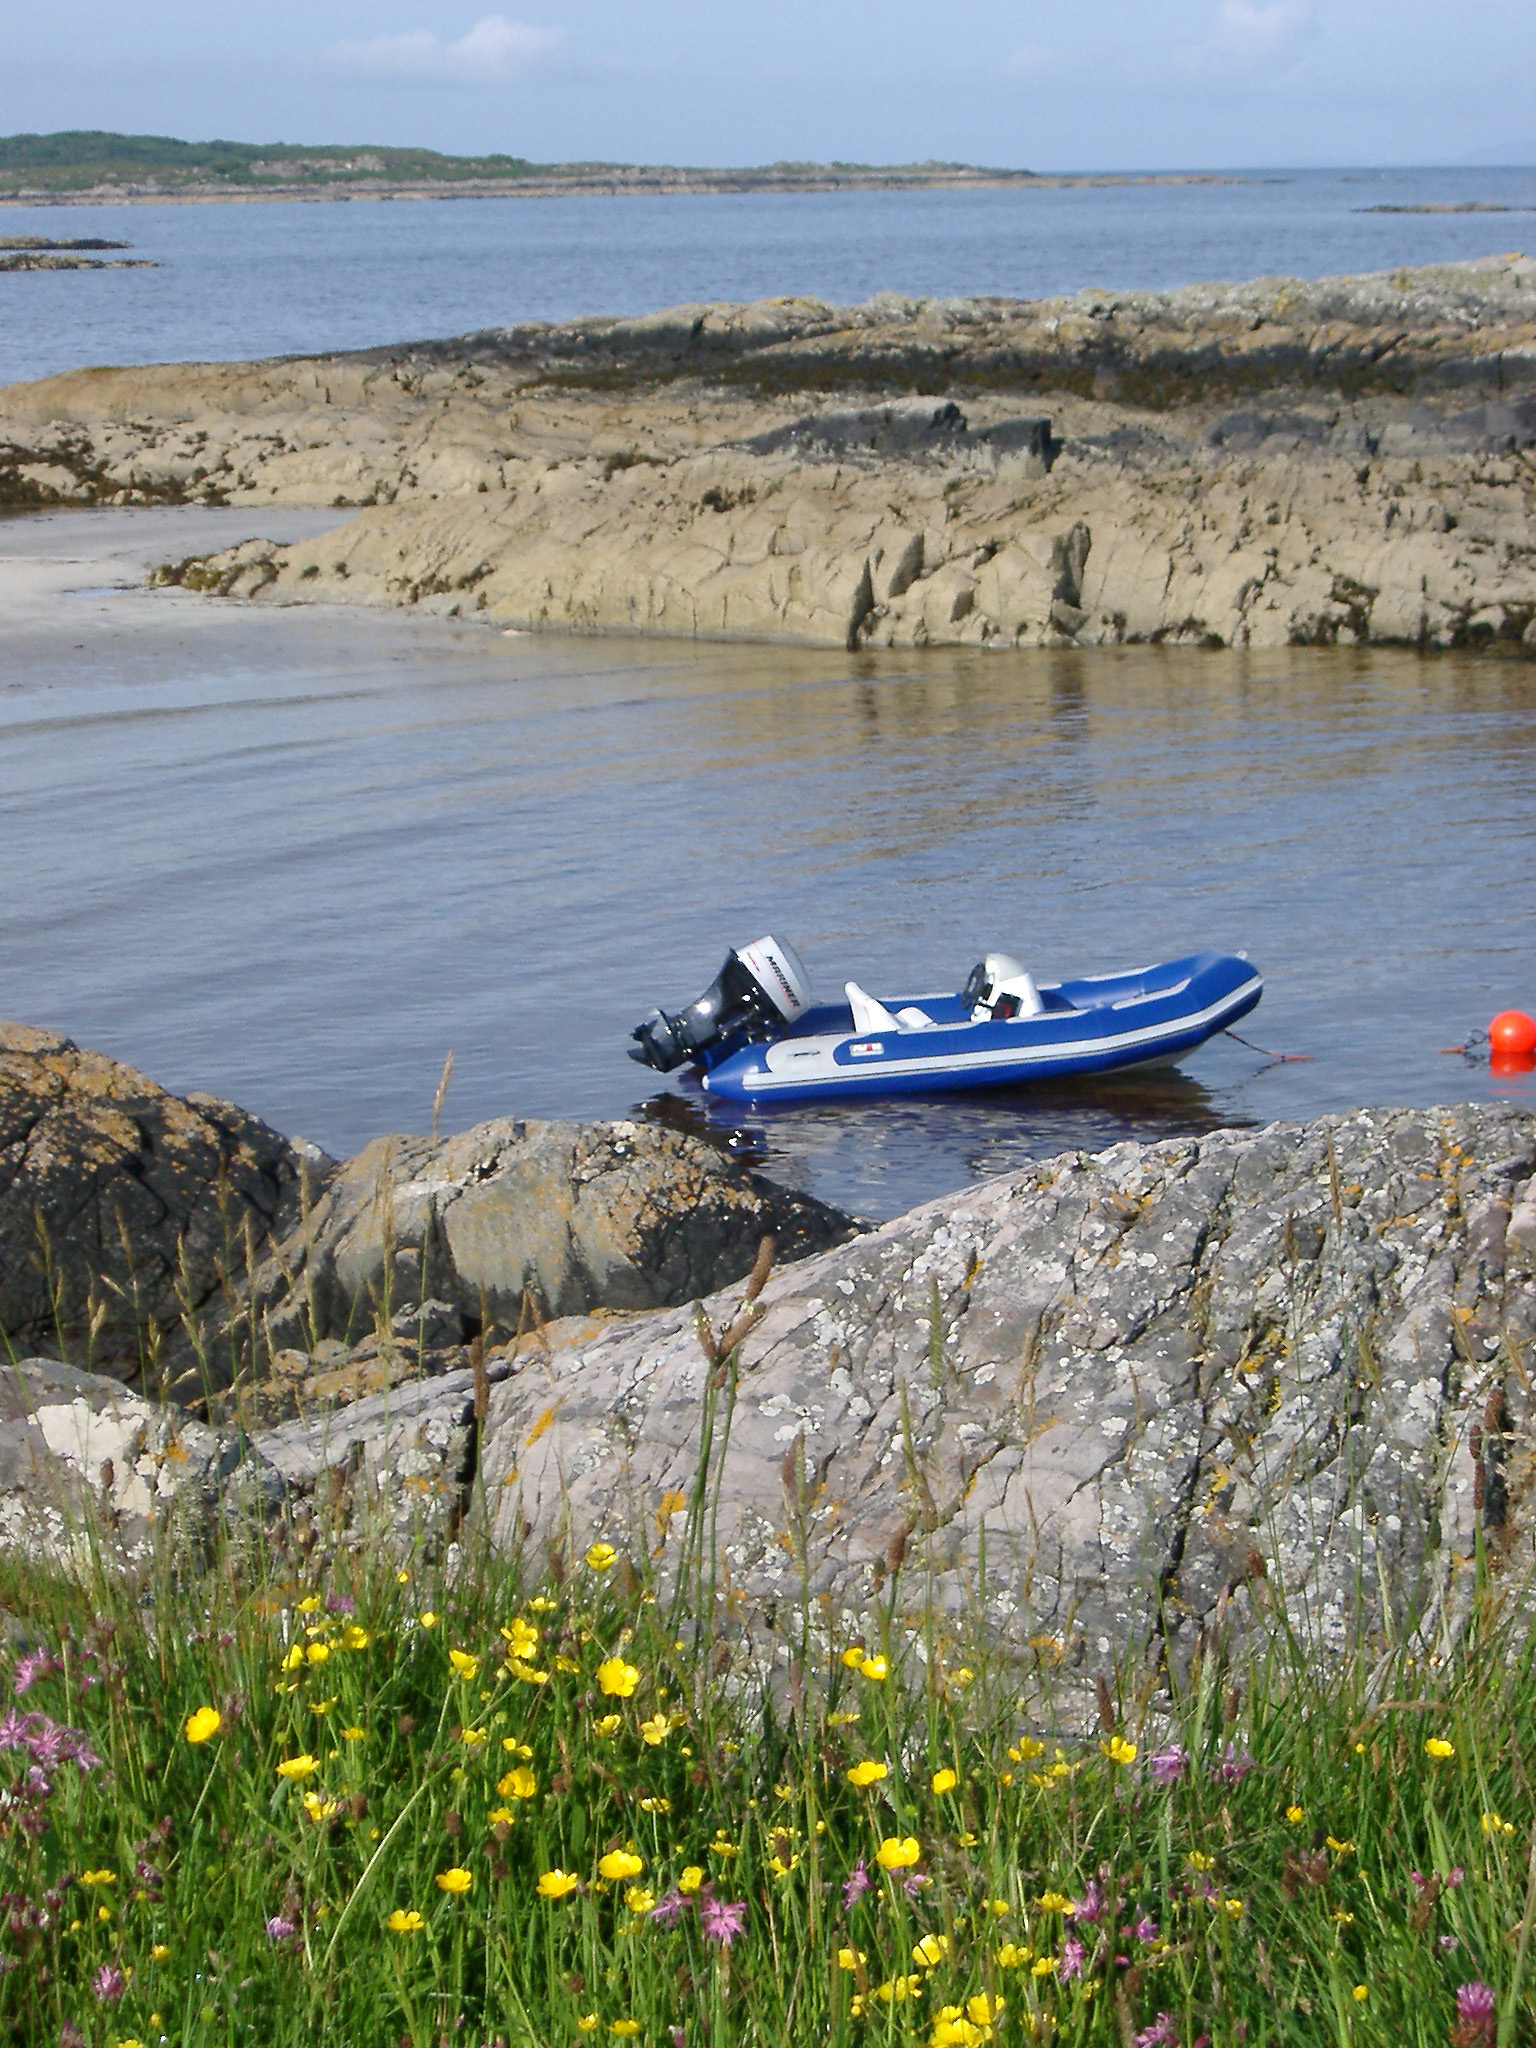 Inflatable rubber dinghy with a small outboard engine moored to a buoy in a rocky coastal inlet in Maillag, Scotland